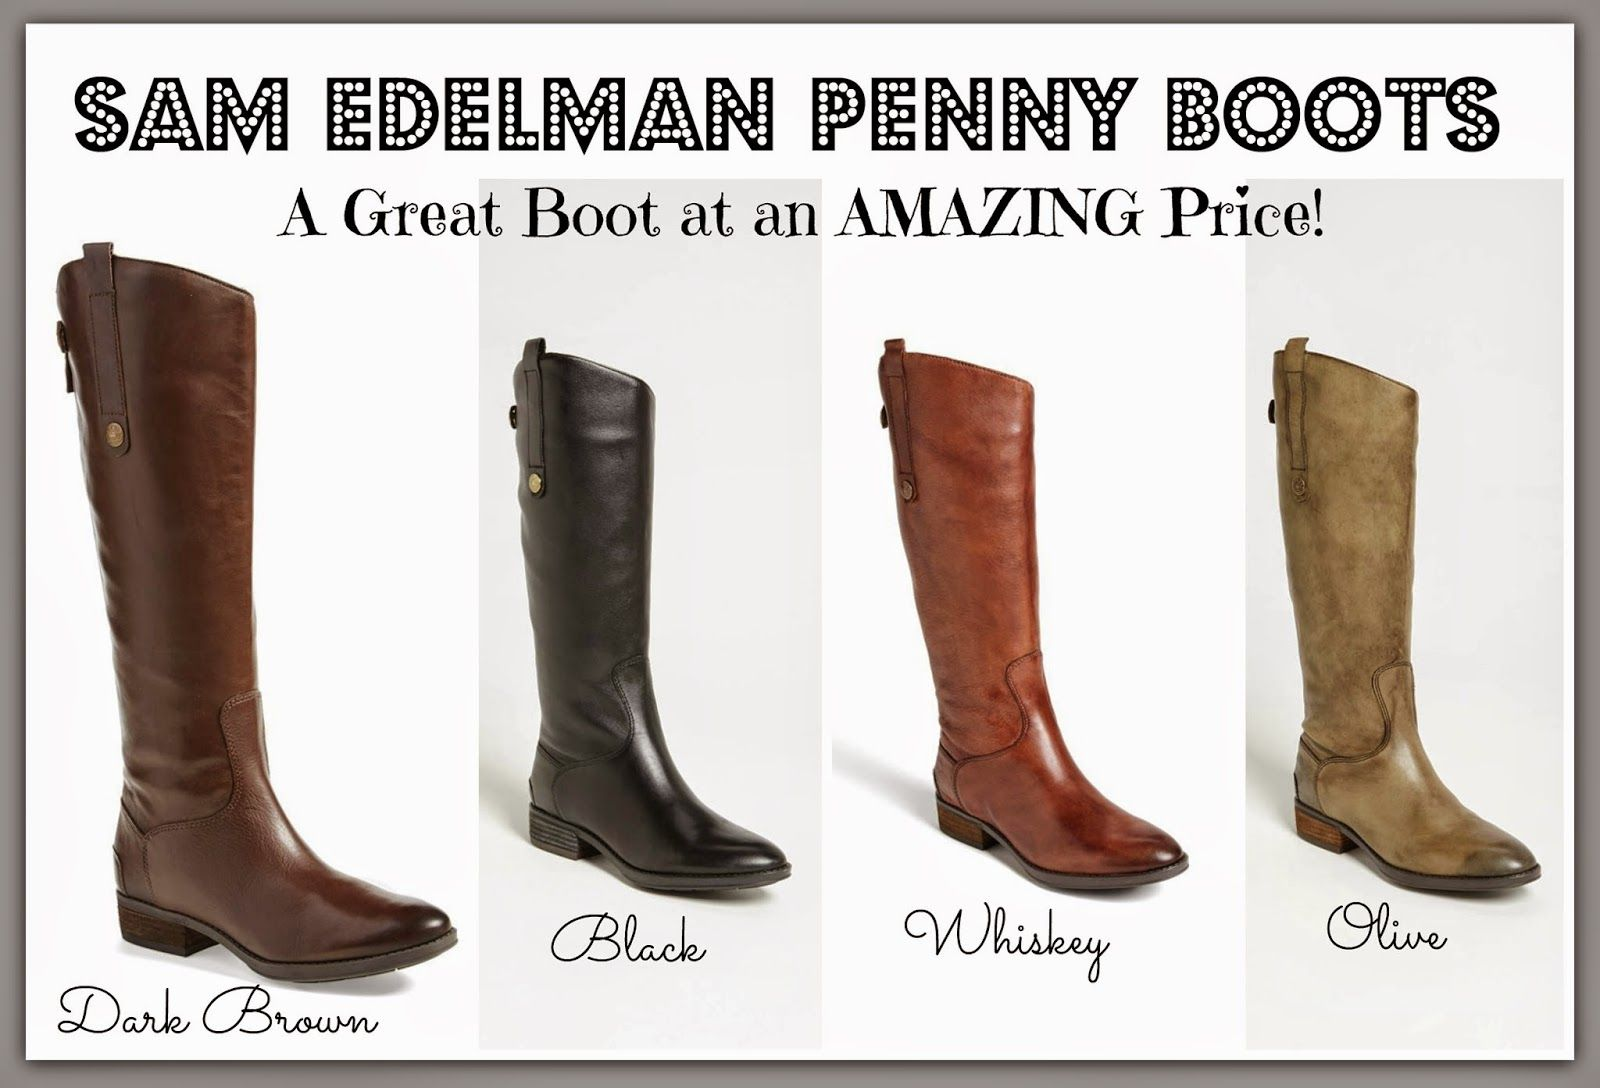 936d6fb913b9 These Sam Edelman Penny Boots are ON SALE and have AMAZING reviews ...